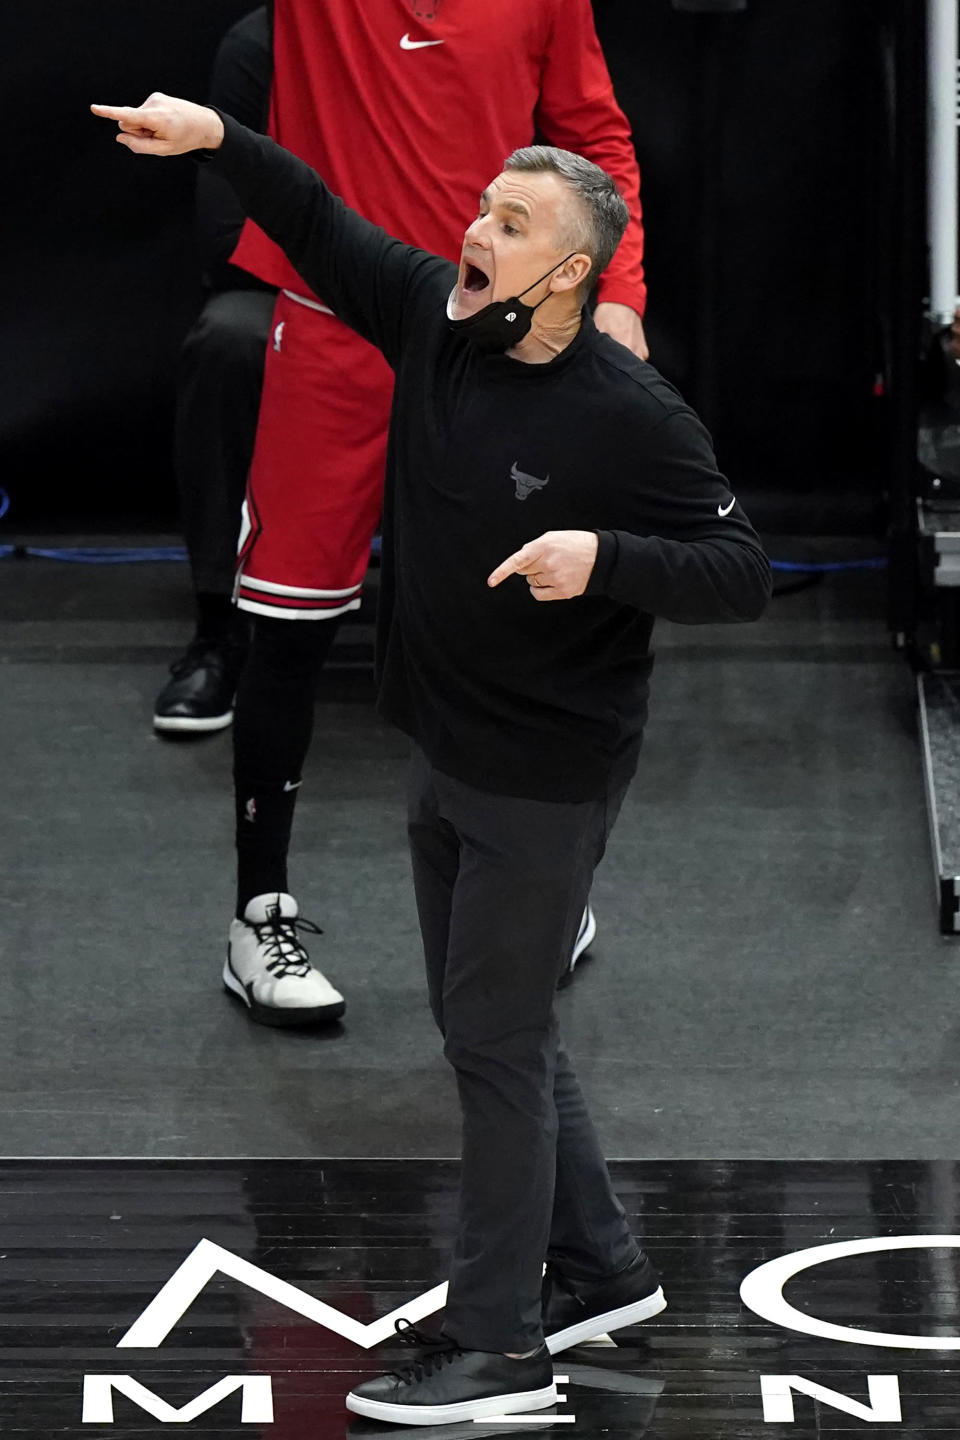 Chicago Bulls coach Billy Donovan gives out directions to the team during the first half of an NBA basketball game against the Toronto Raptors in Chicago, Thursday, May 13, 2021. (AP Photo/Nam Y. Huh)